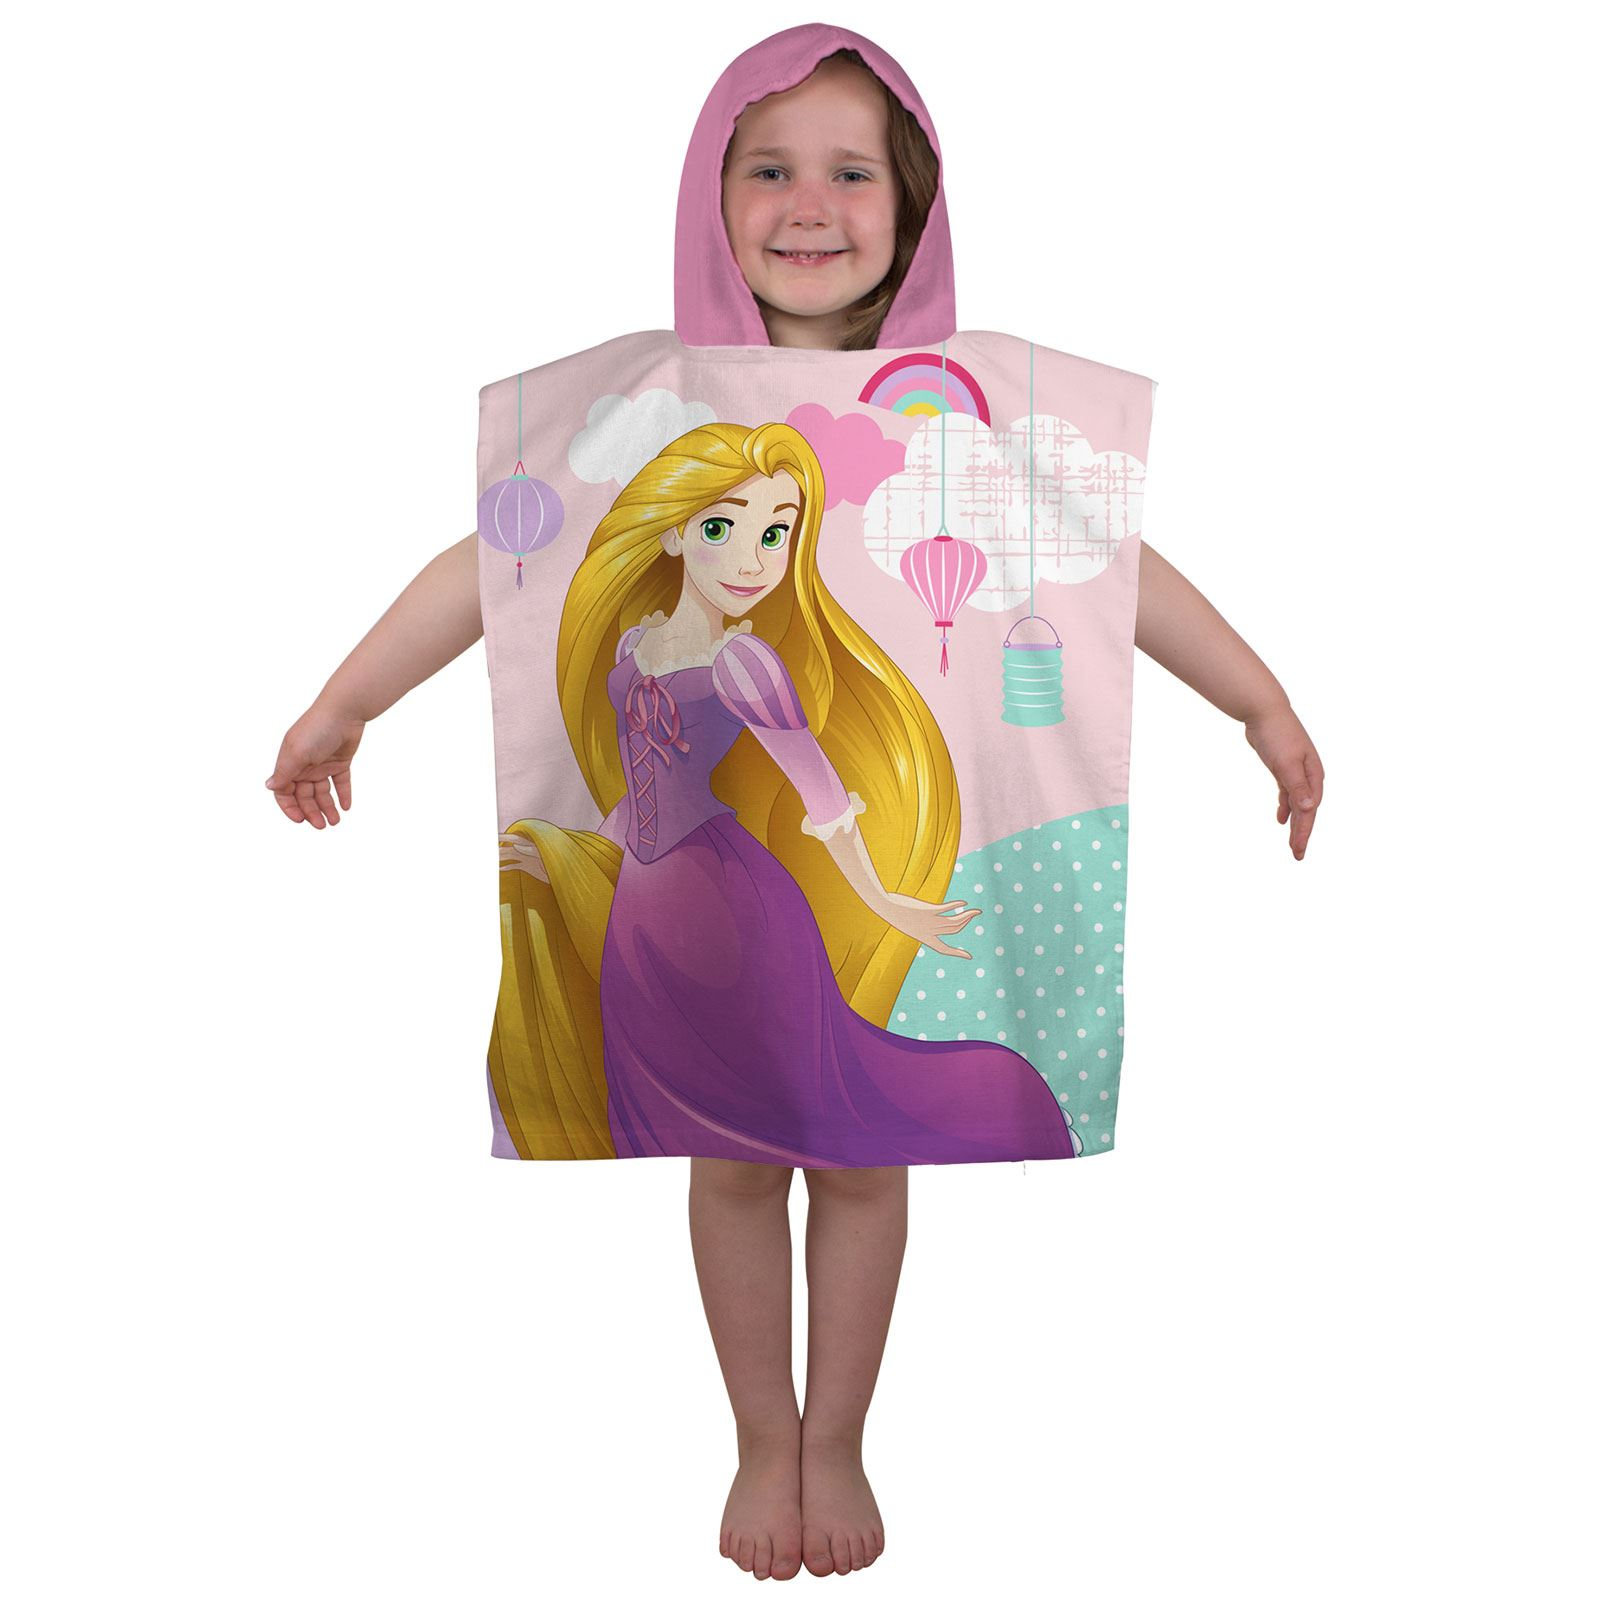 disney prinzessin zauberhaft kapuzen handtuch poncho f r bade strand ebay. Black Bedroom Furniture Sets. Home Design Ideas